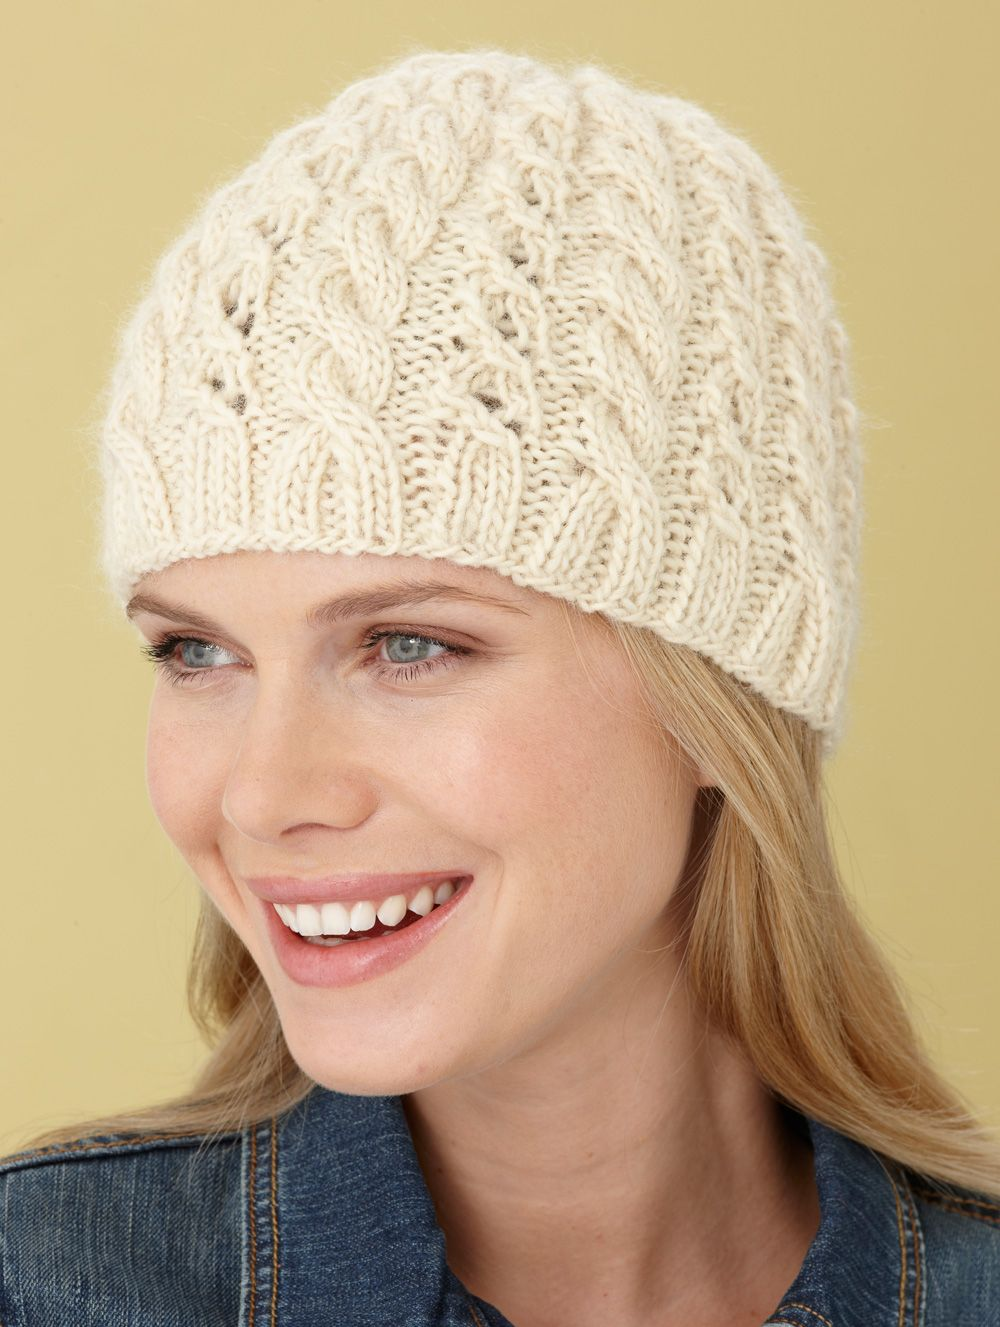 Knit this classic cabled hat with just 1 ball of LB